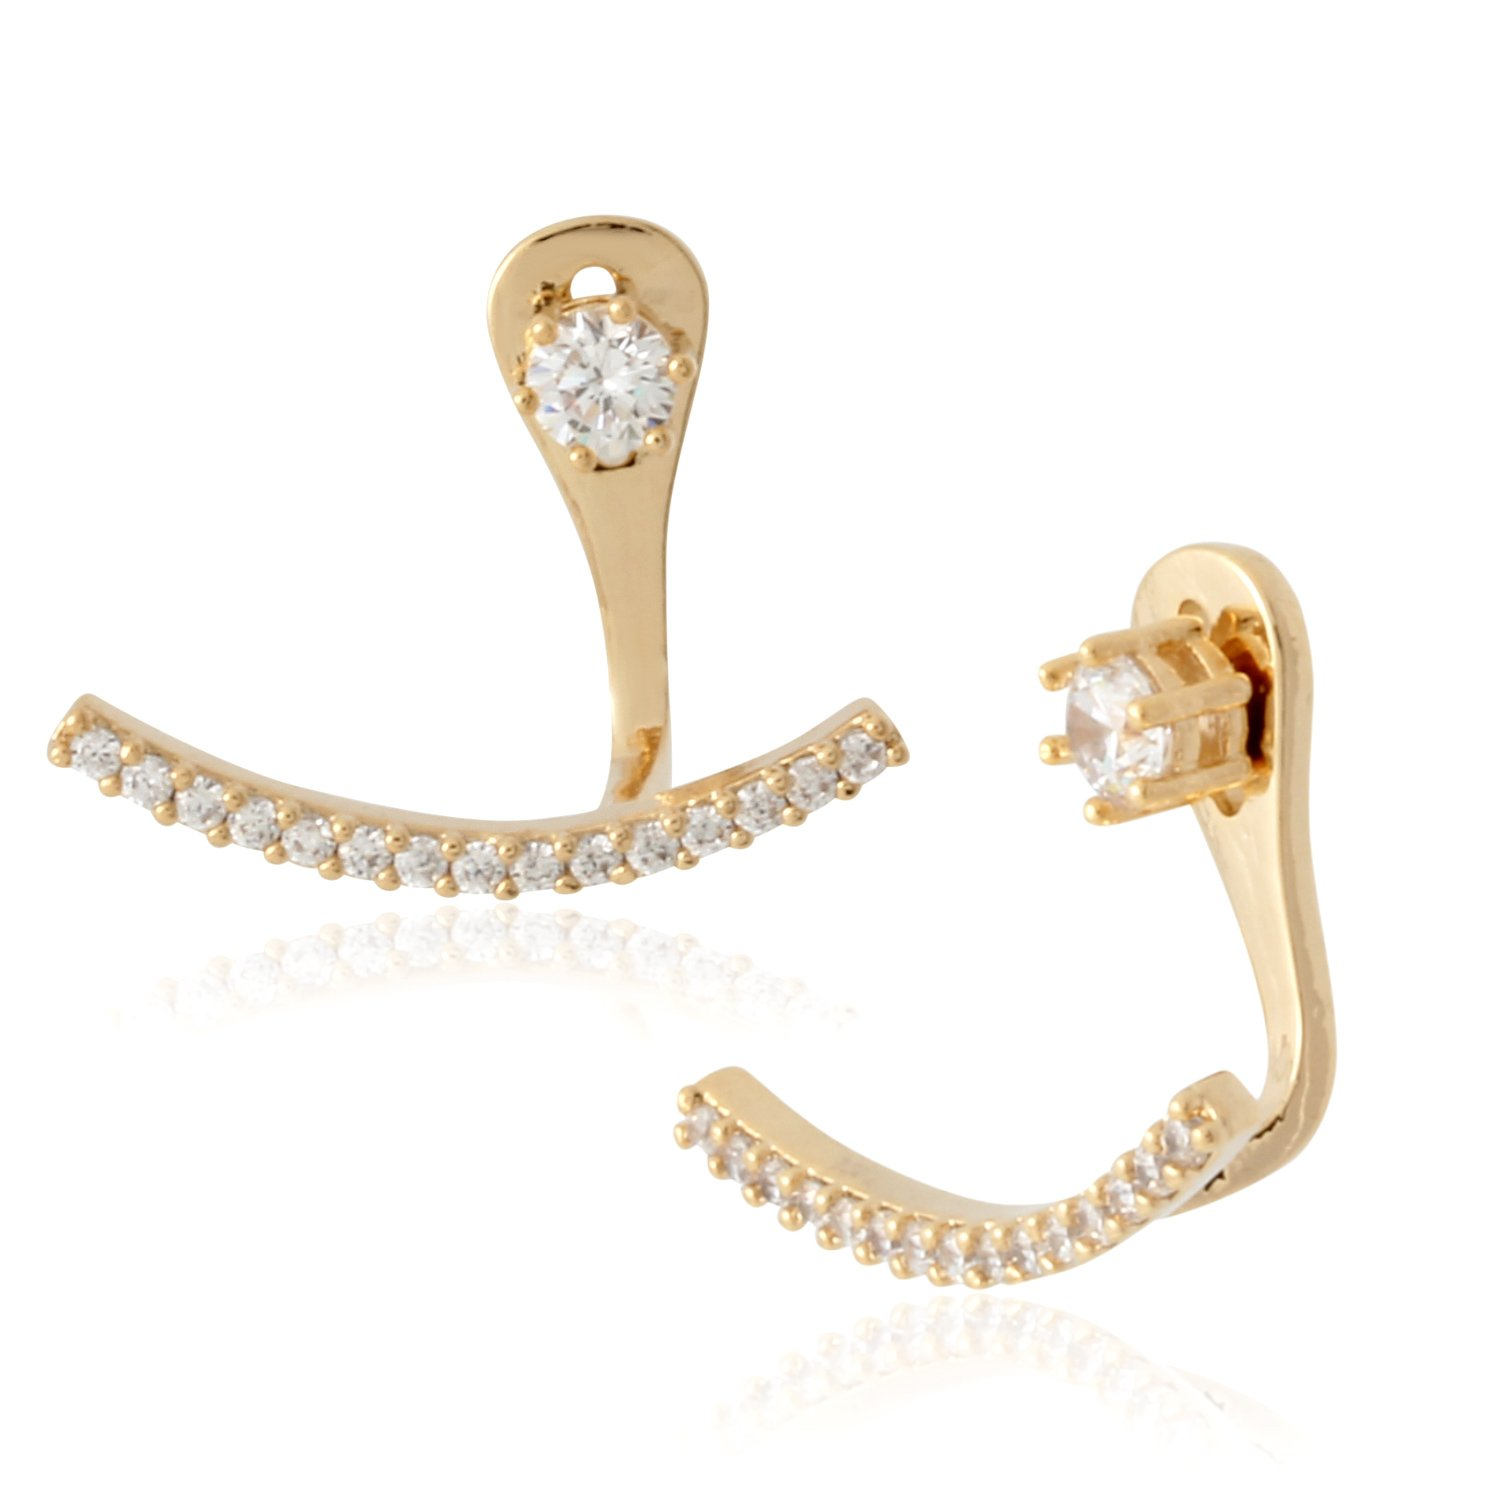 Front Back 2 in 1 Round Cubic Zirconia AAA Quality Stud and Ear Jacket Cuff Earrings by Lovey Lovey (Gold)